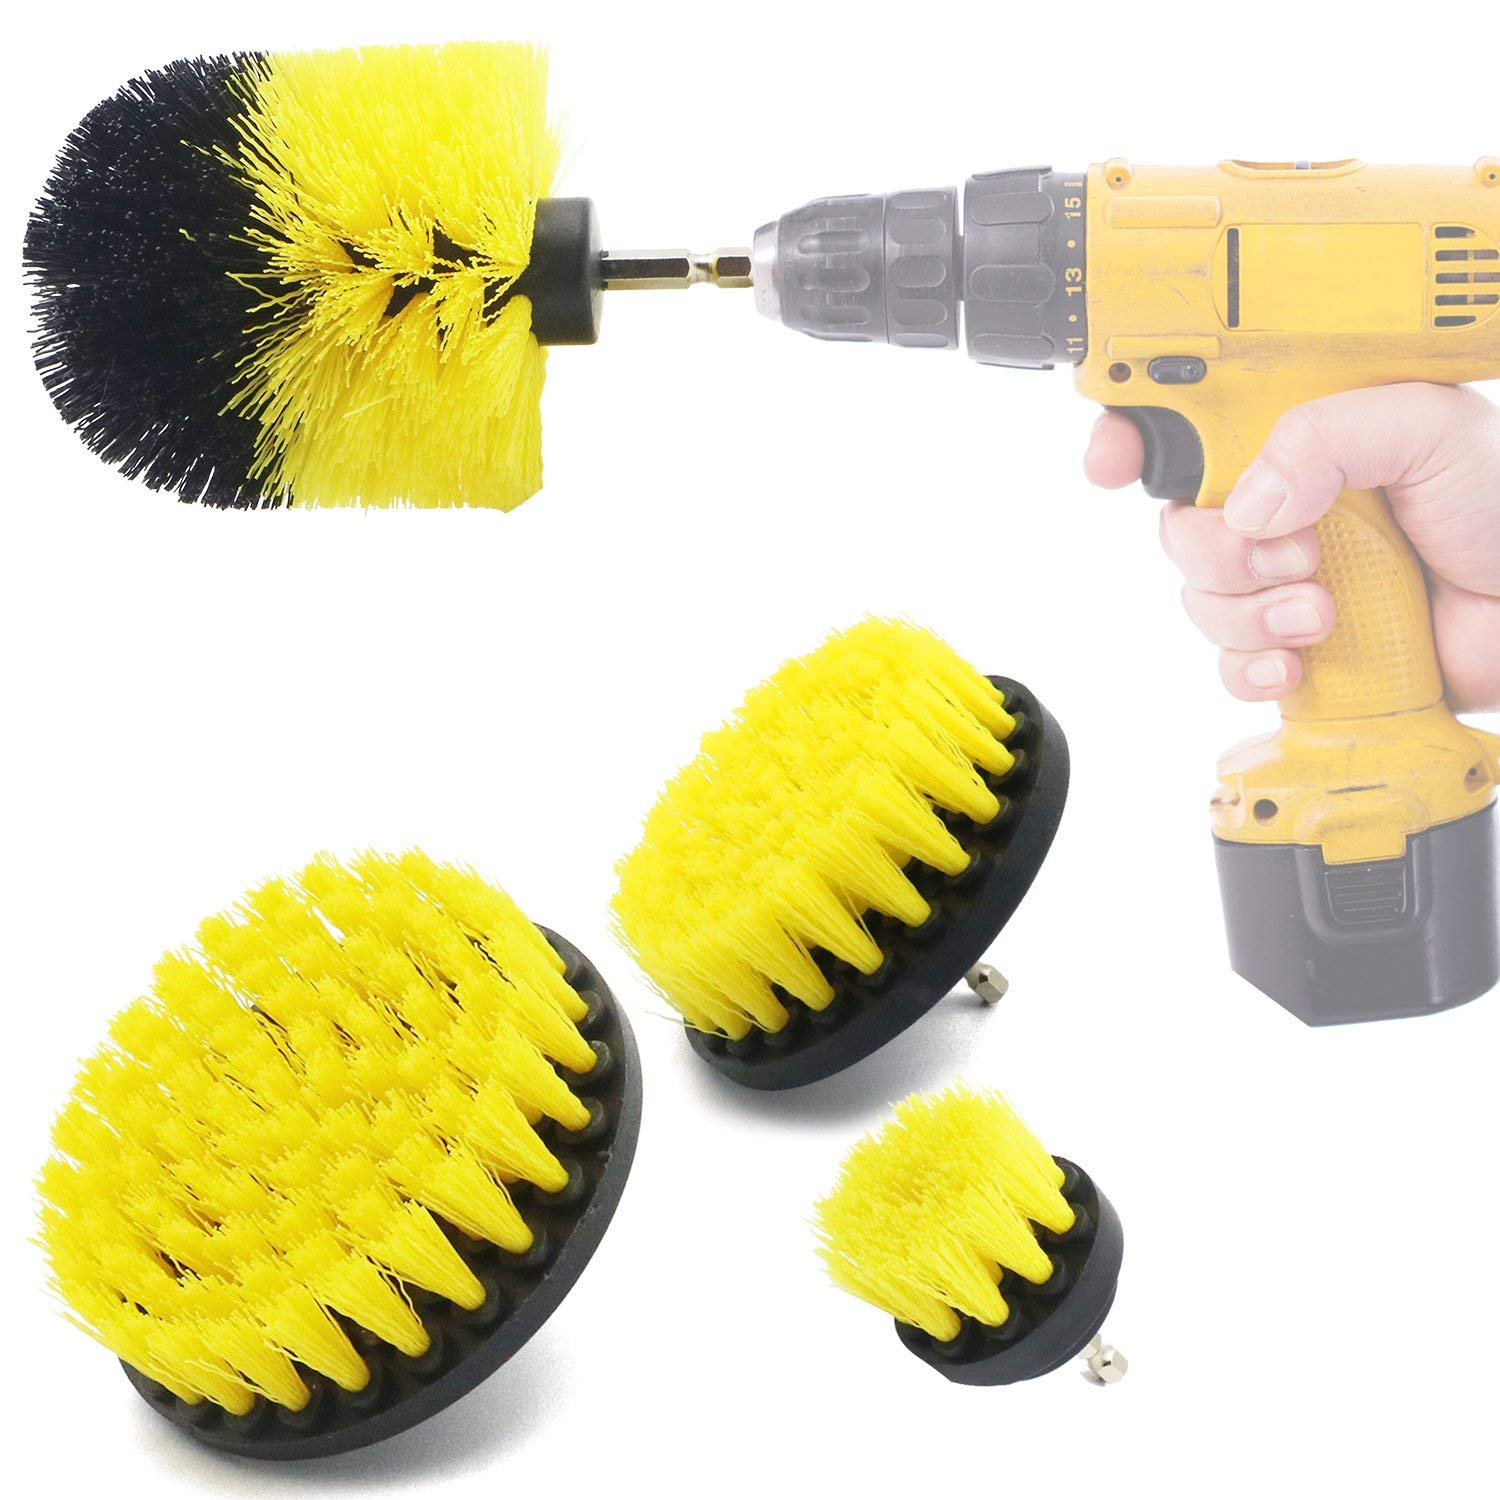 Kitchens,Bathrooms Showers Tubs Boats Power Scrubber 1 Piece Yellow YIJINSHENG 1 Piece Medium and Stiff Brush with Drill Attachment Scrubbing Brushes for Cleaning Car Tires,Carpet